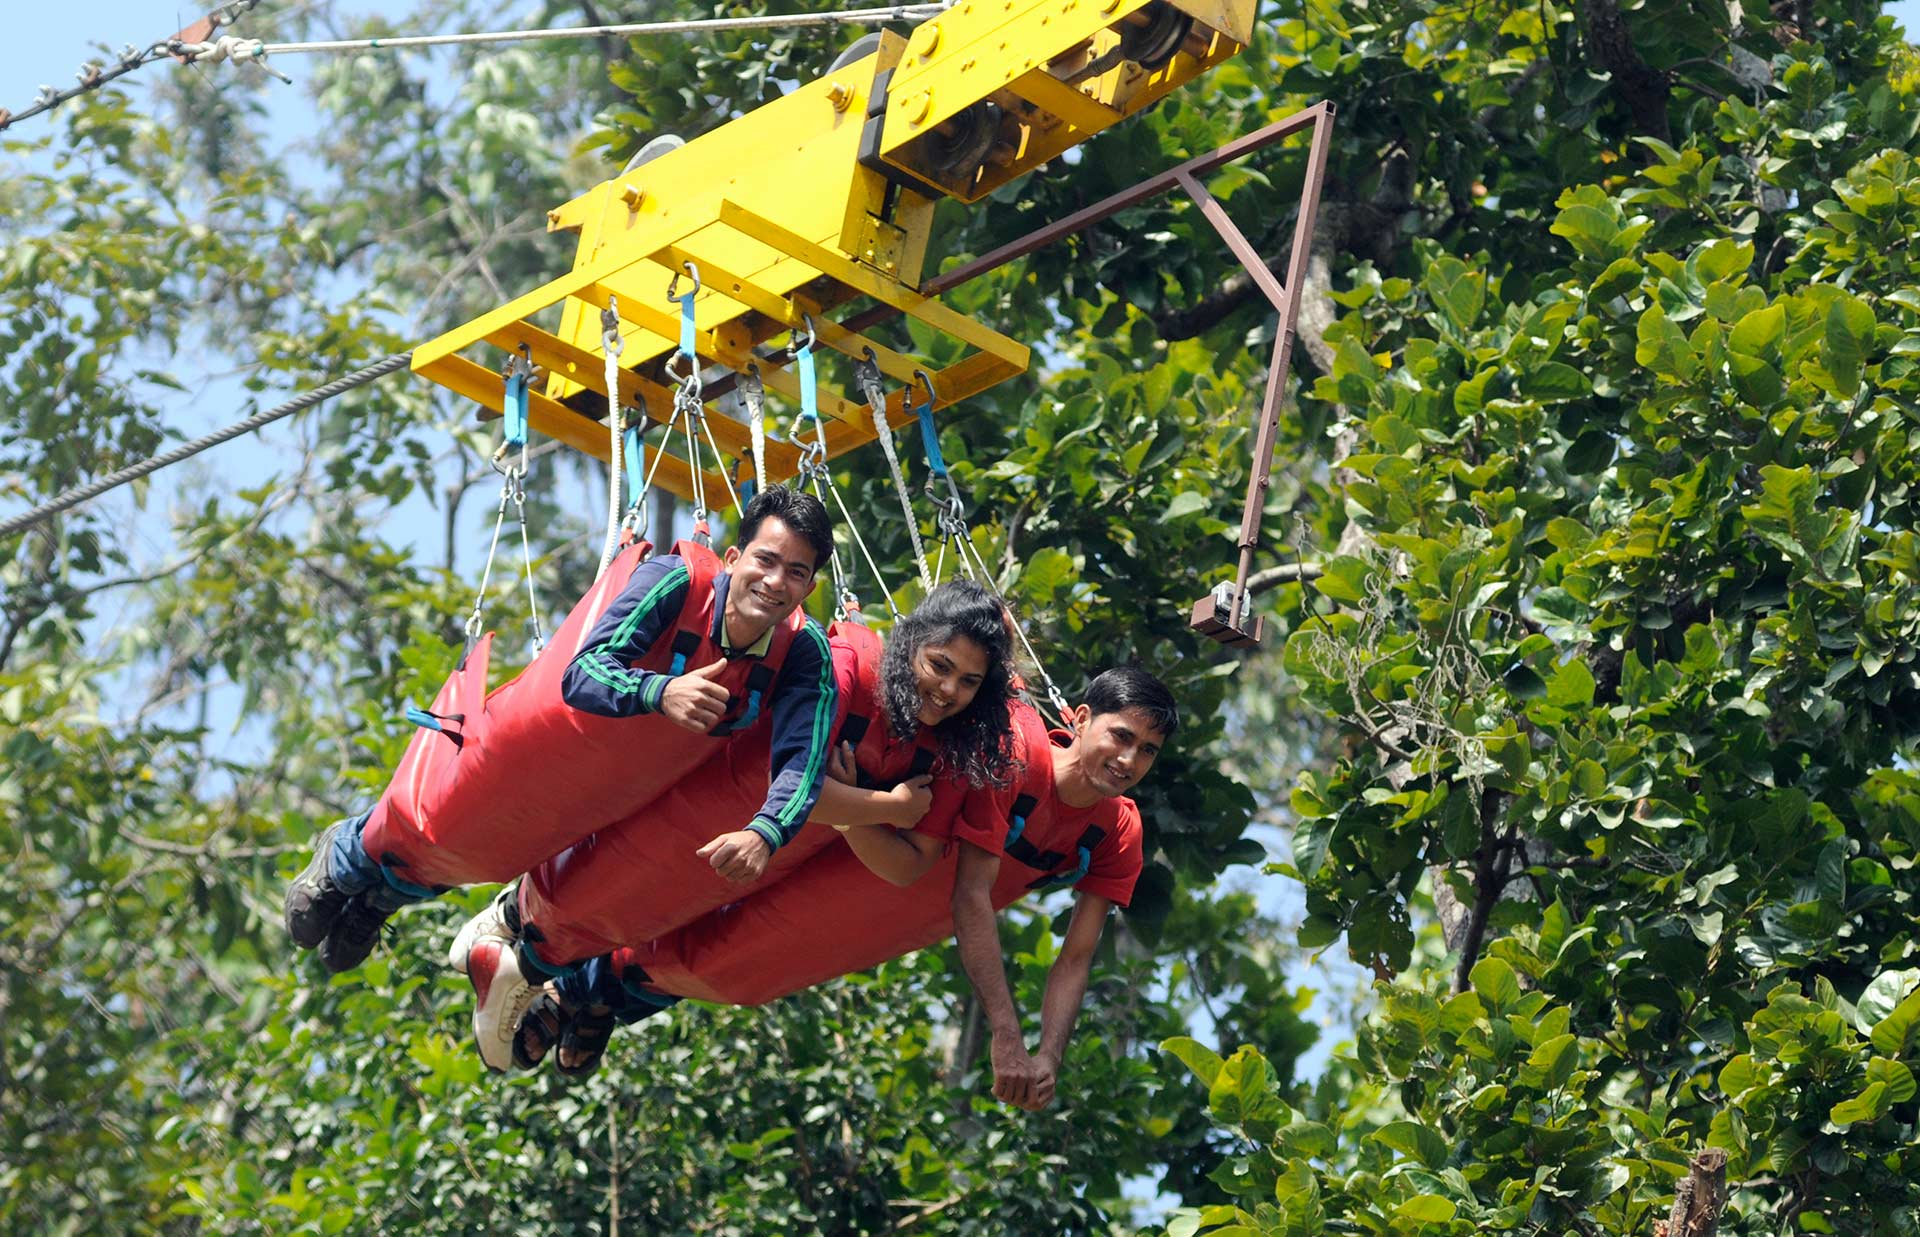 http://m.thegreatnext.com/Rishikesh Bungee Jump Flying Fox Giant Swing Jumpin Heights Adventure Ganges